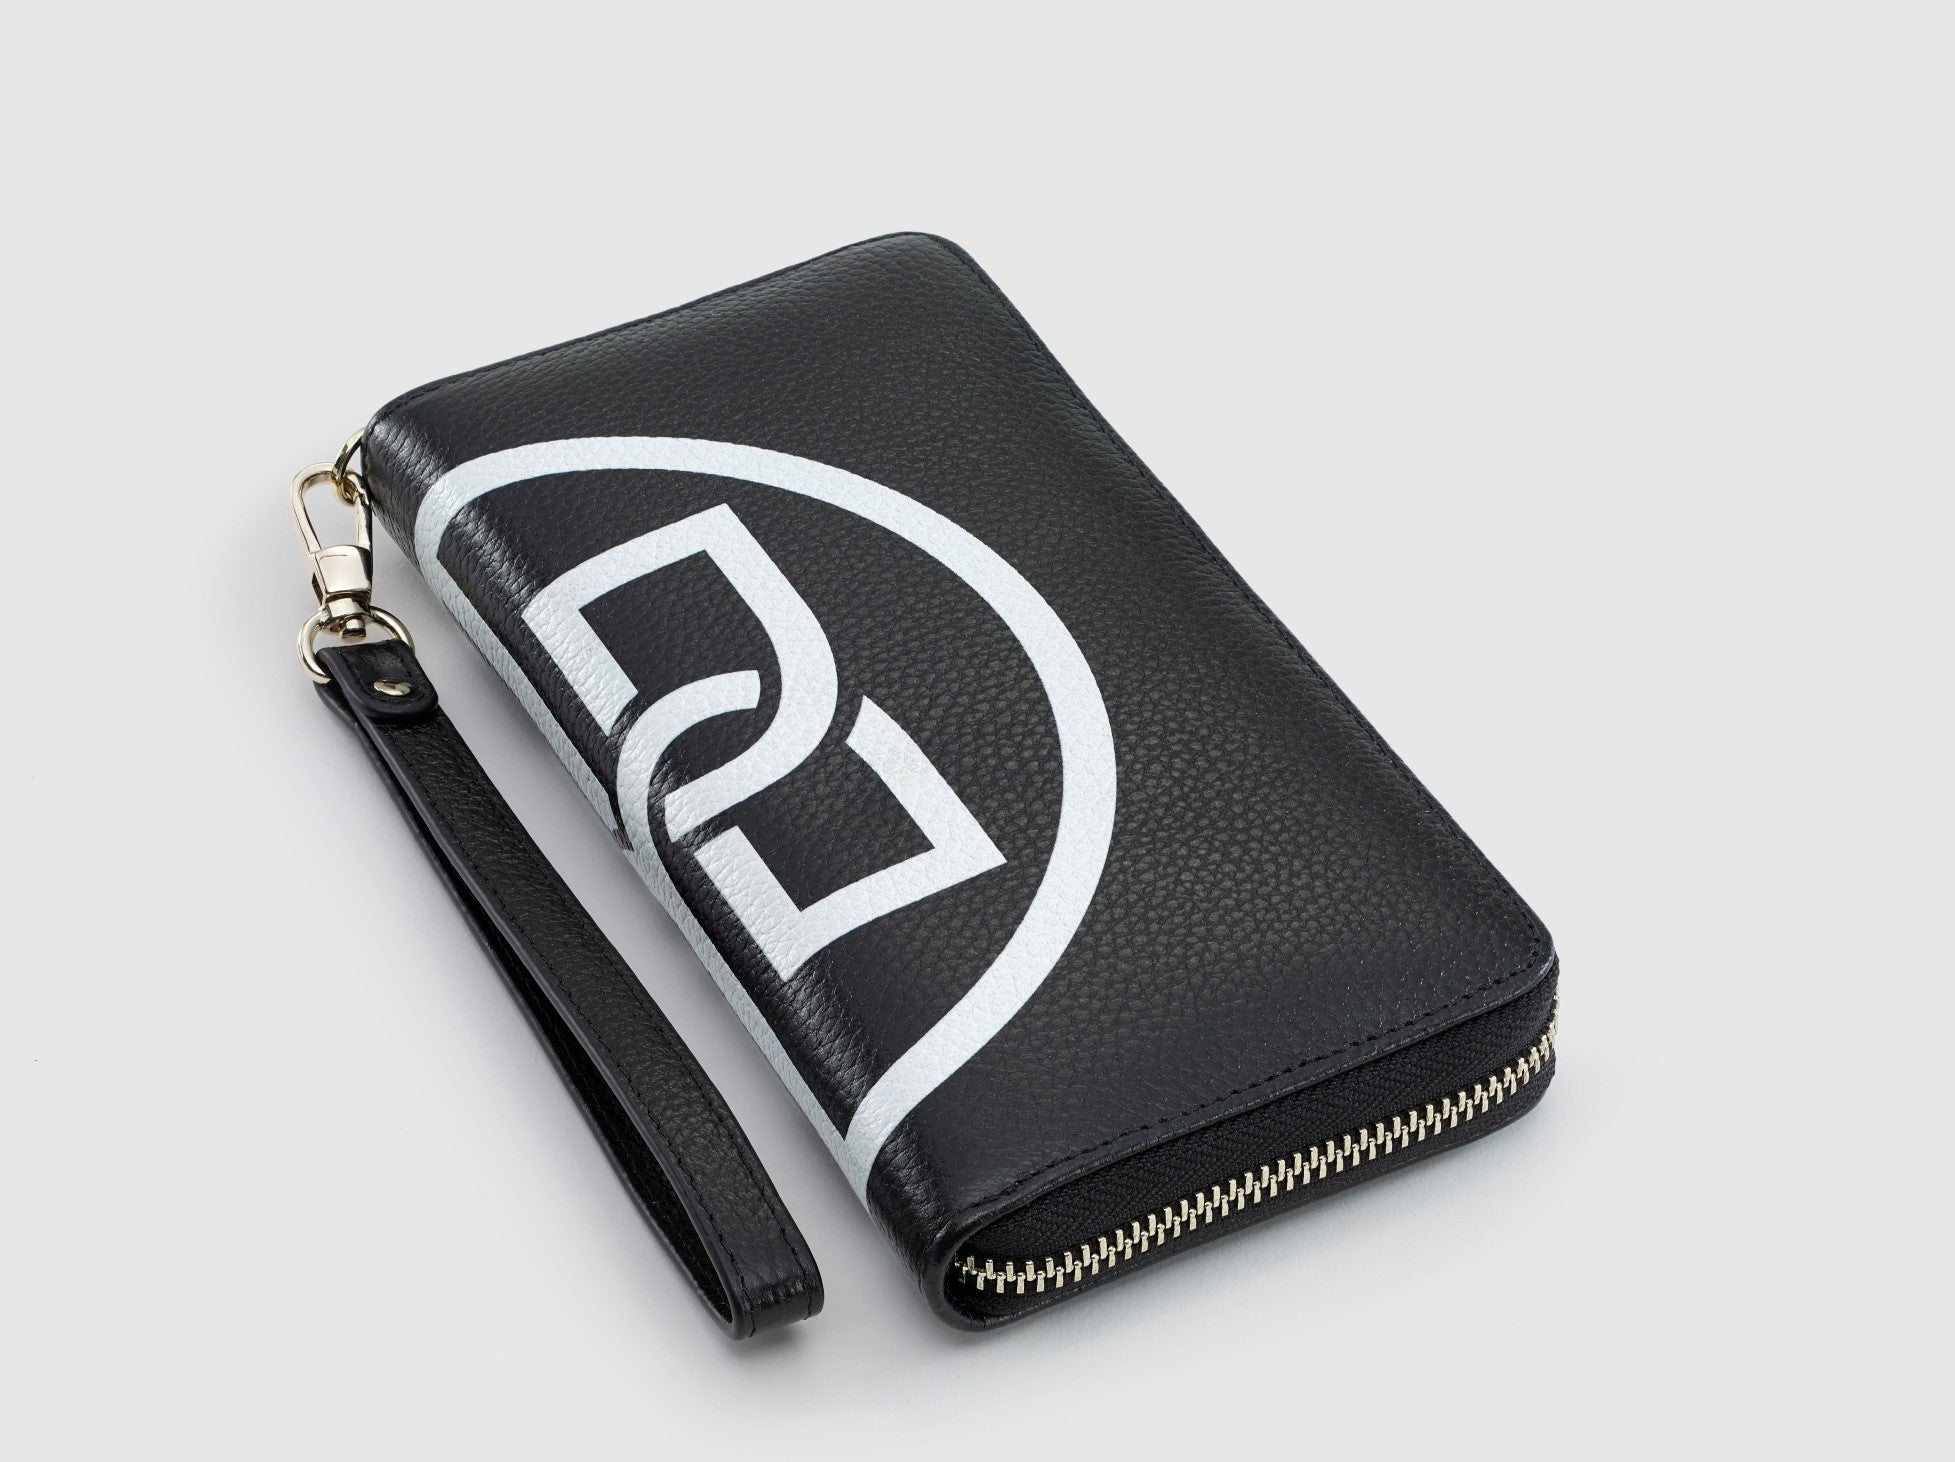 The Freya Black and White Motif Ziparound Wallet